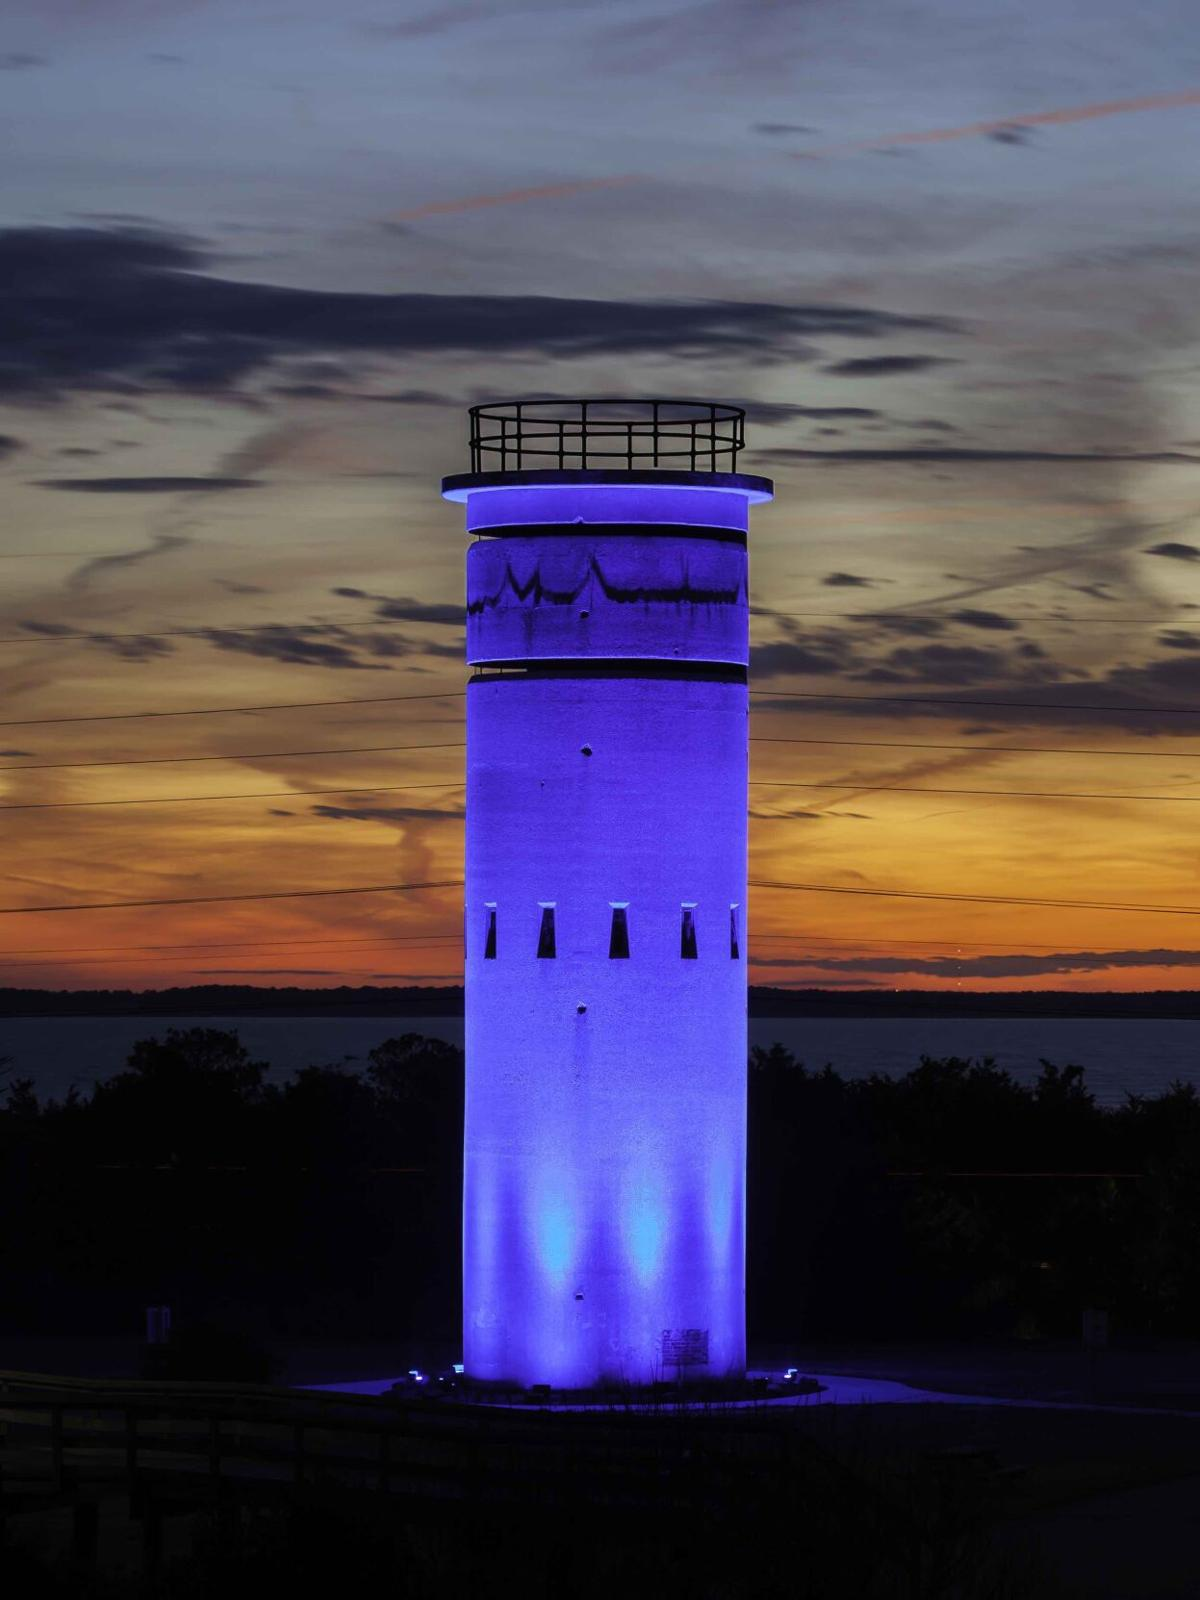 Fire control tower lit in blue